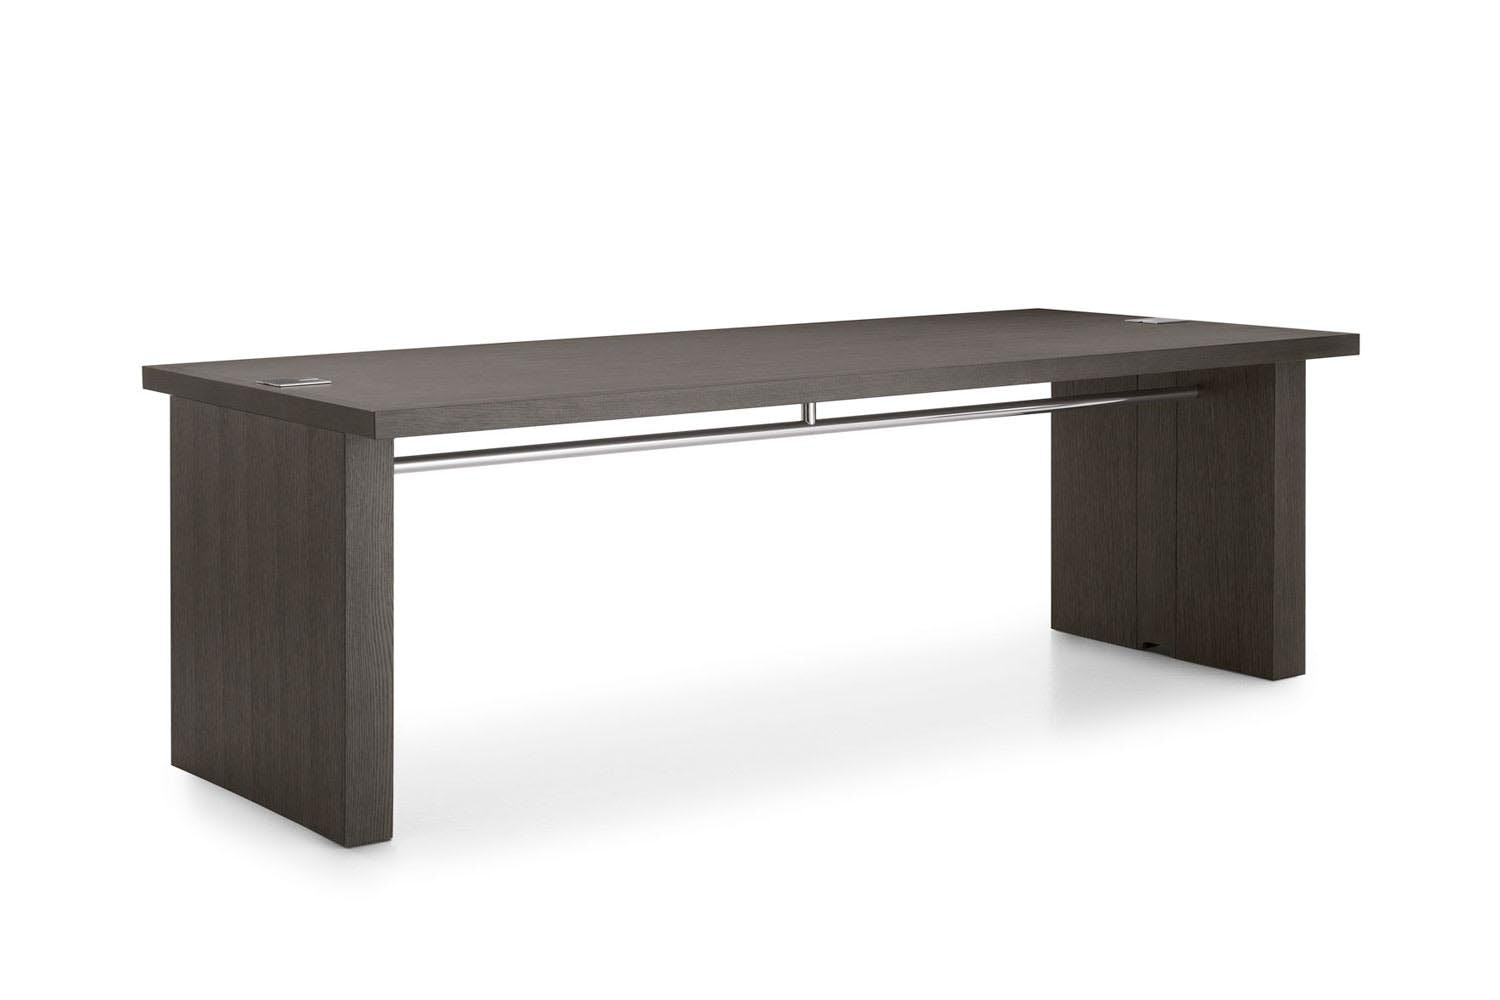 AC Executive - Tables by Antonio Citterio for Maxalto